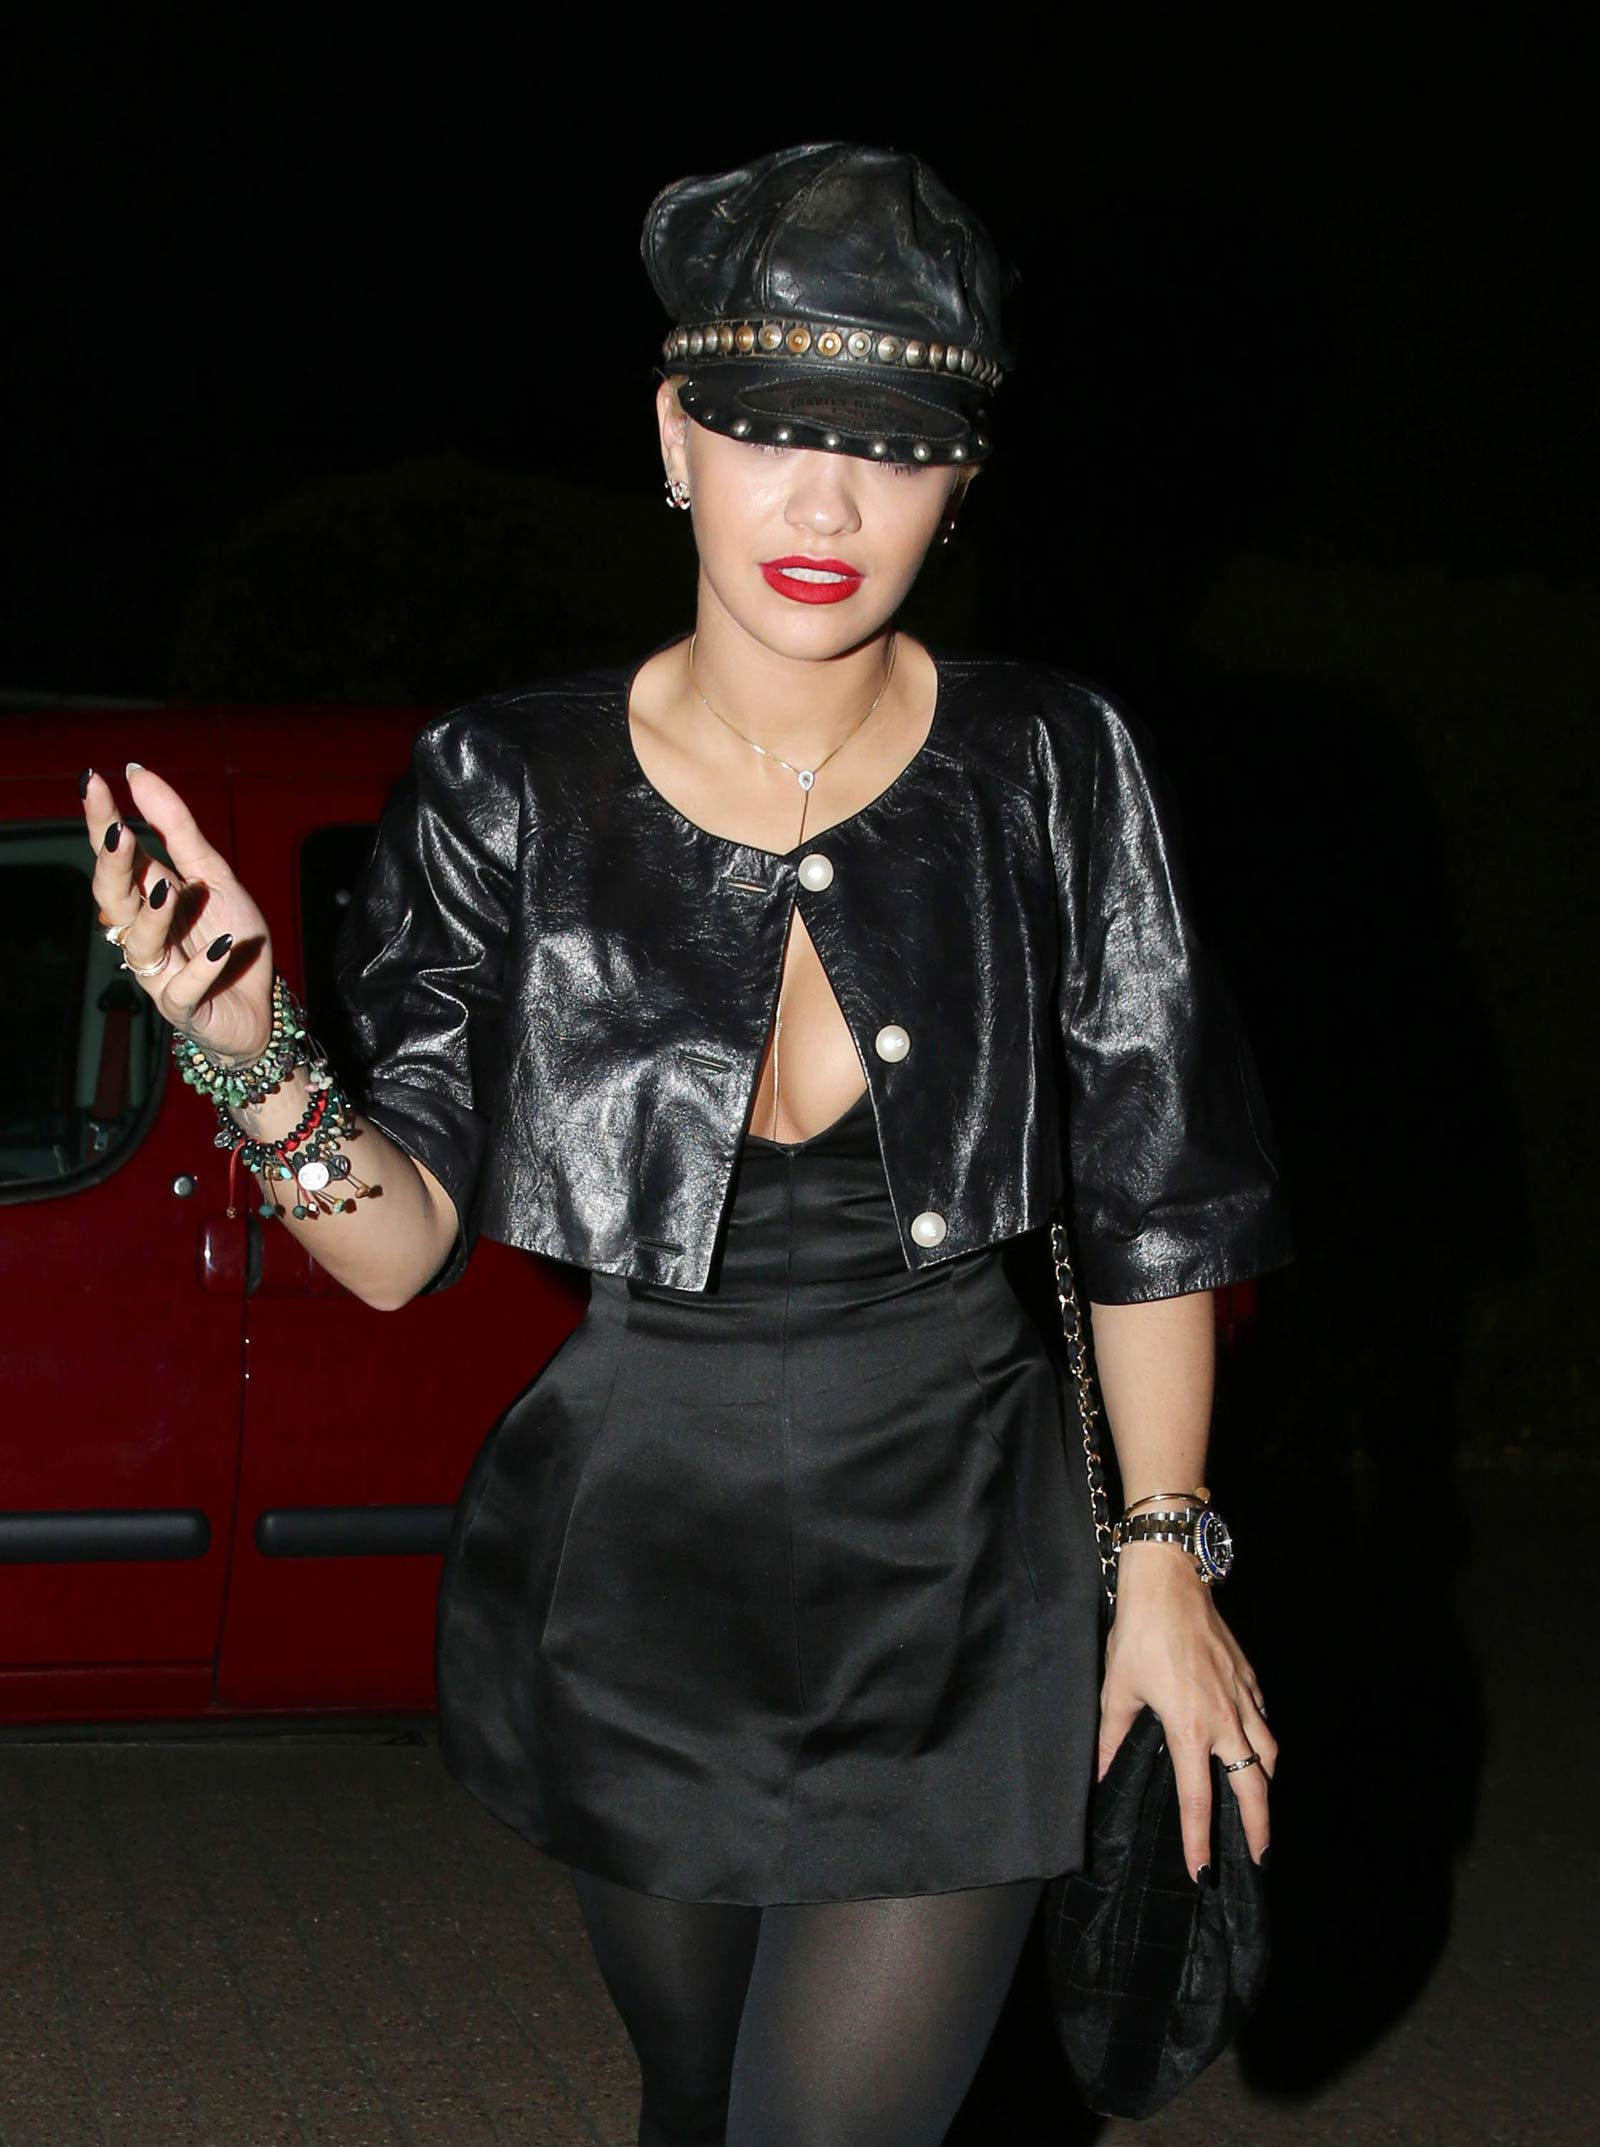 Rita Ora seen at Chiltern Firehouse